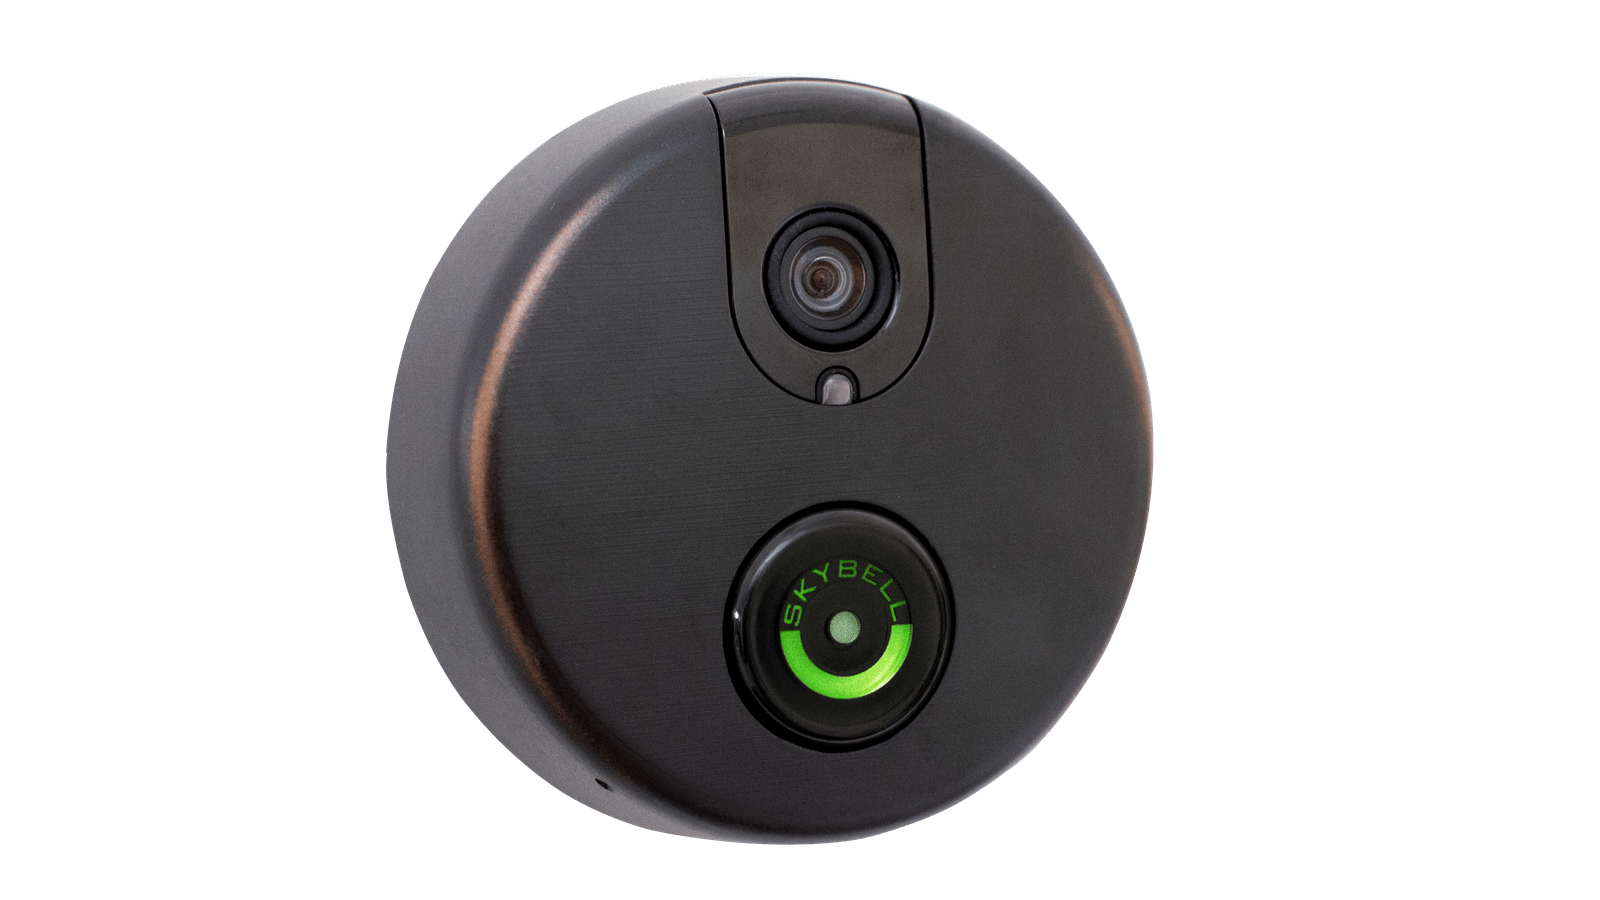 SkyBells Internet Doorbell Gets Faster With Always On Wi